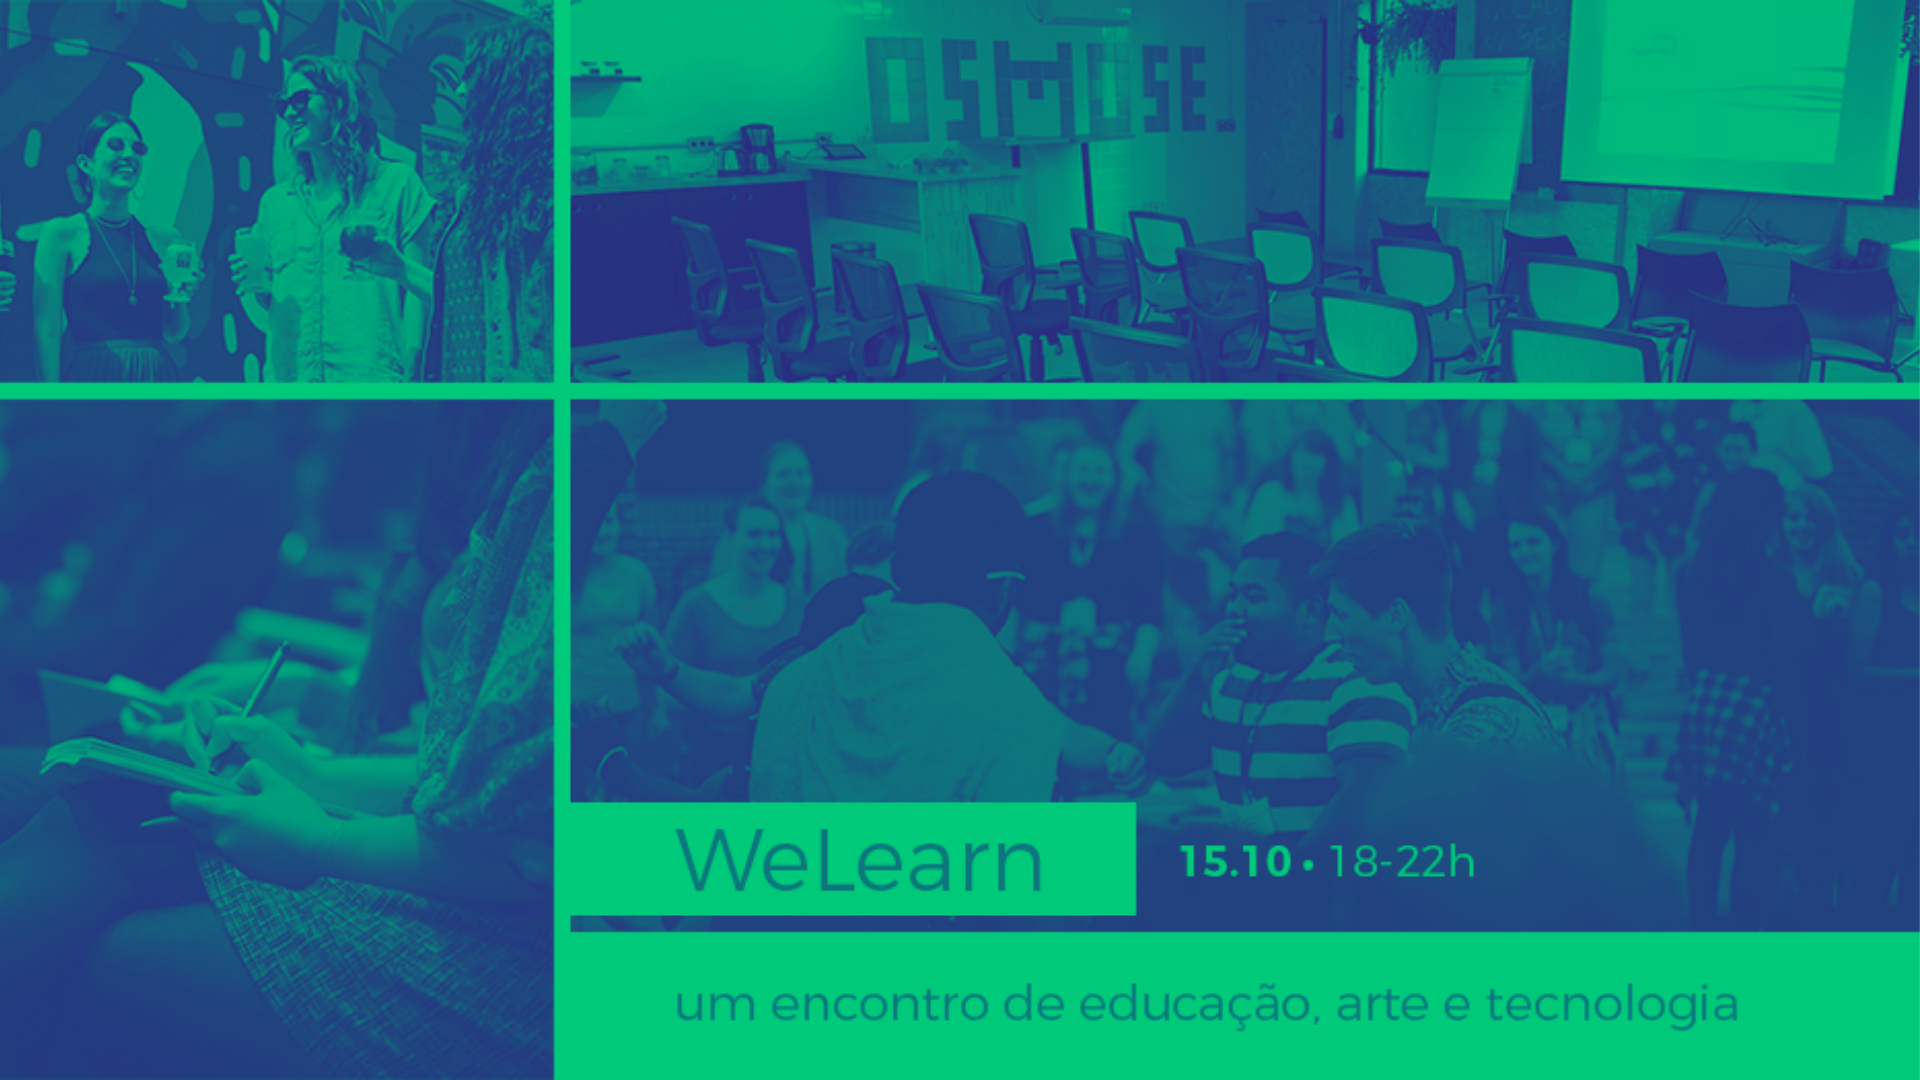 We Learn evento